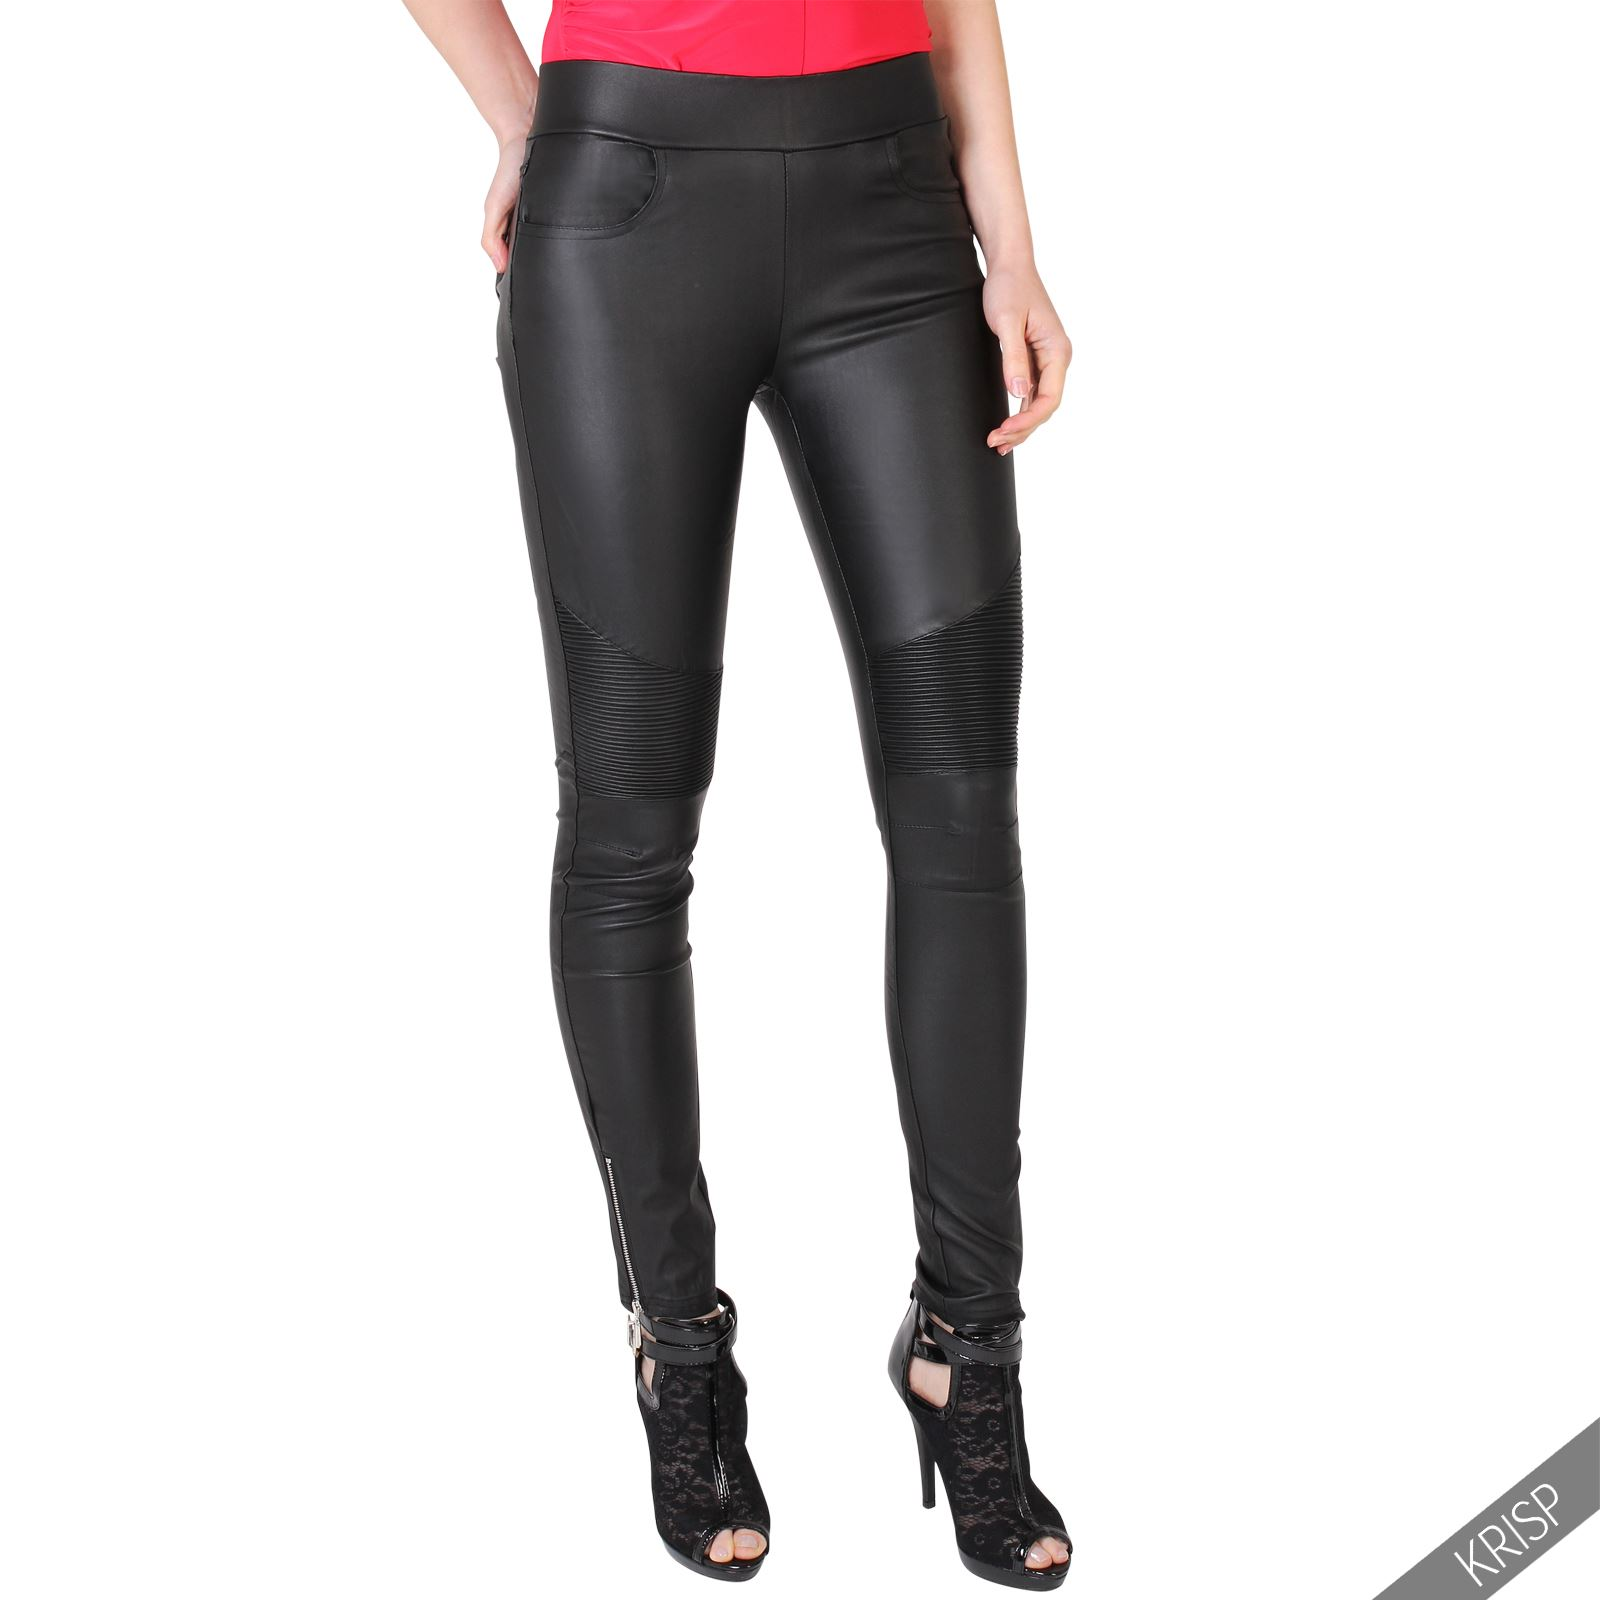 damen biker jeggings stretch kunstleder hose slim fit skinny lederhose wet look. Black Bedroom Furniture Sets. Home Design Ideas